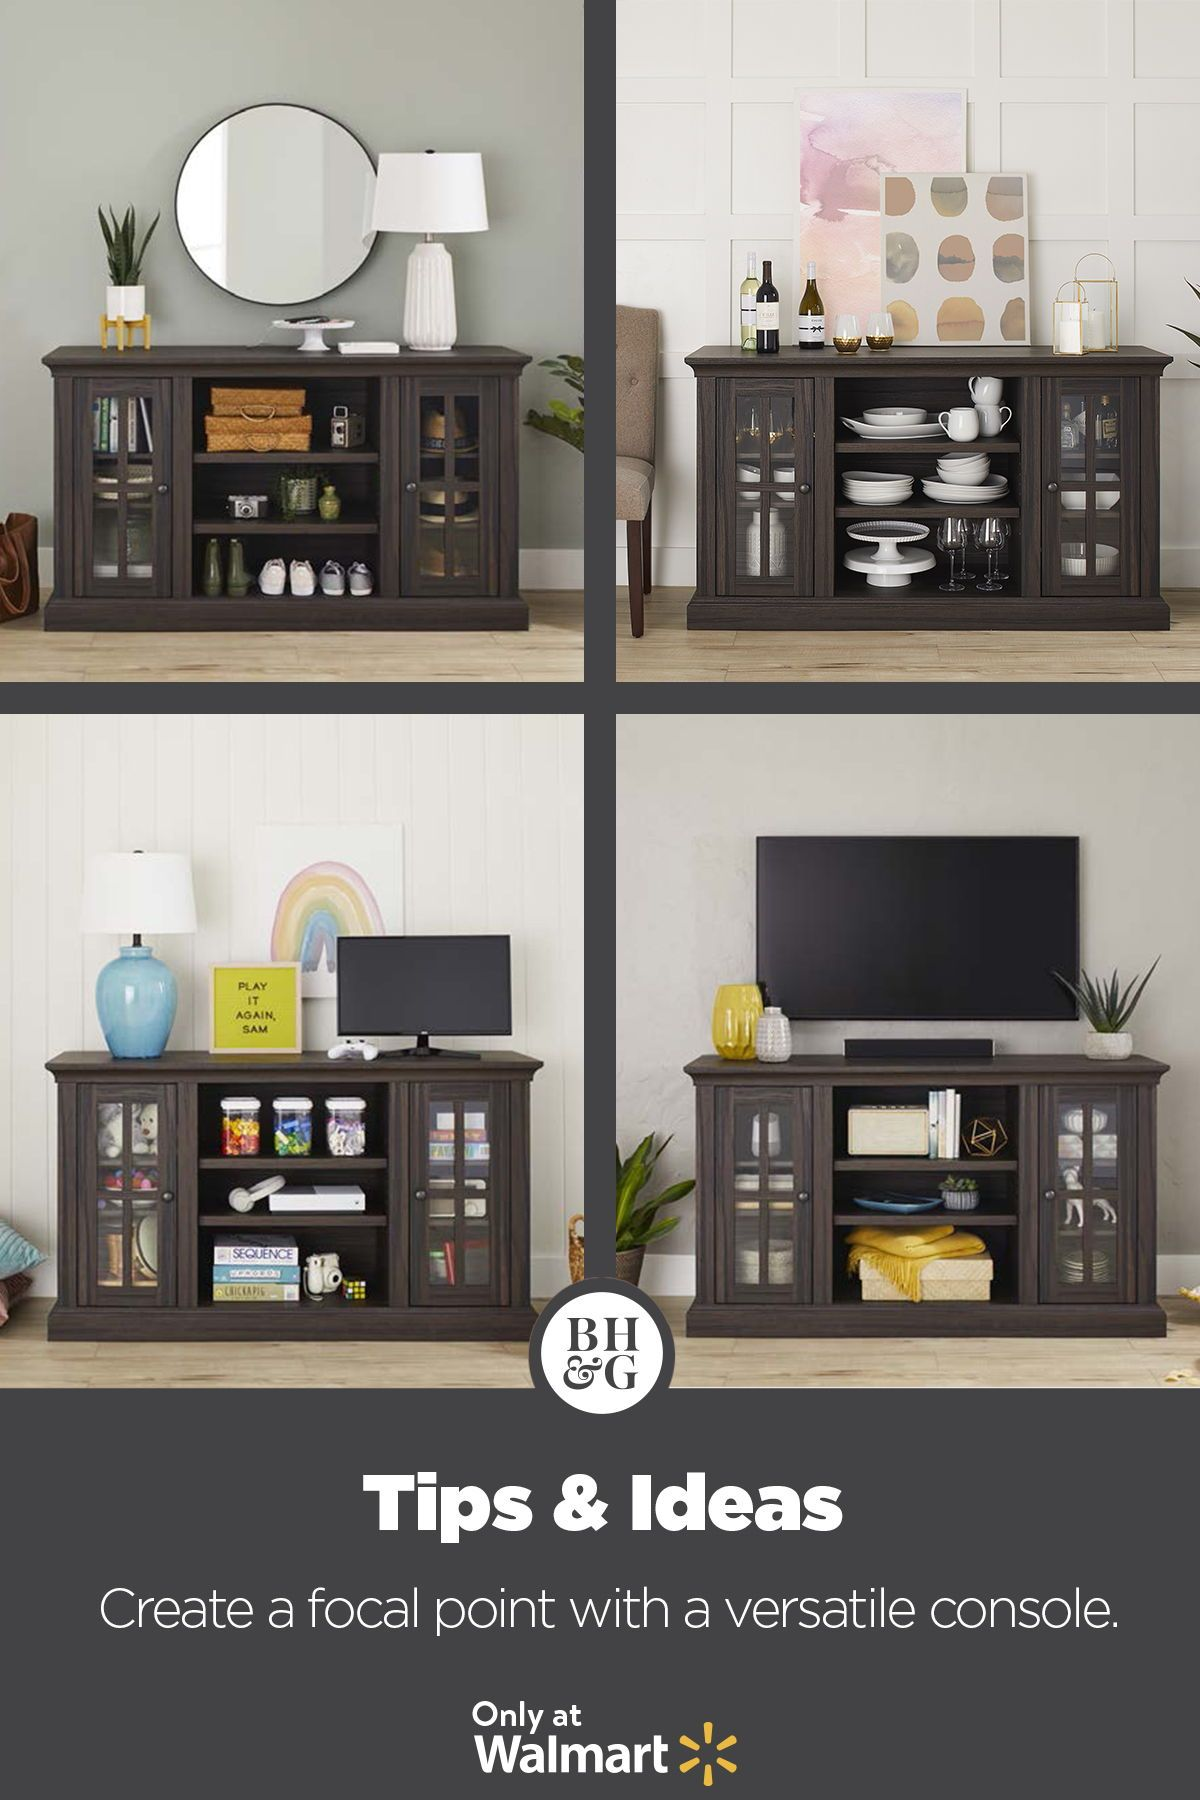 99060685aacb1372745182b8af1ebf92 - Better Homes And Gardens Tv Stand At Walmart